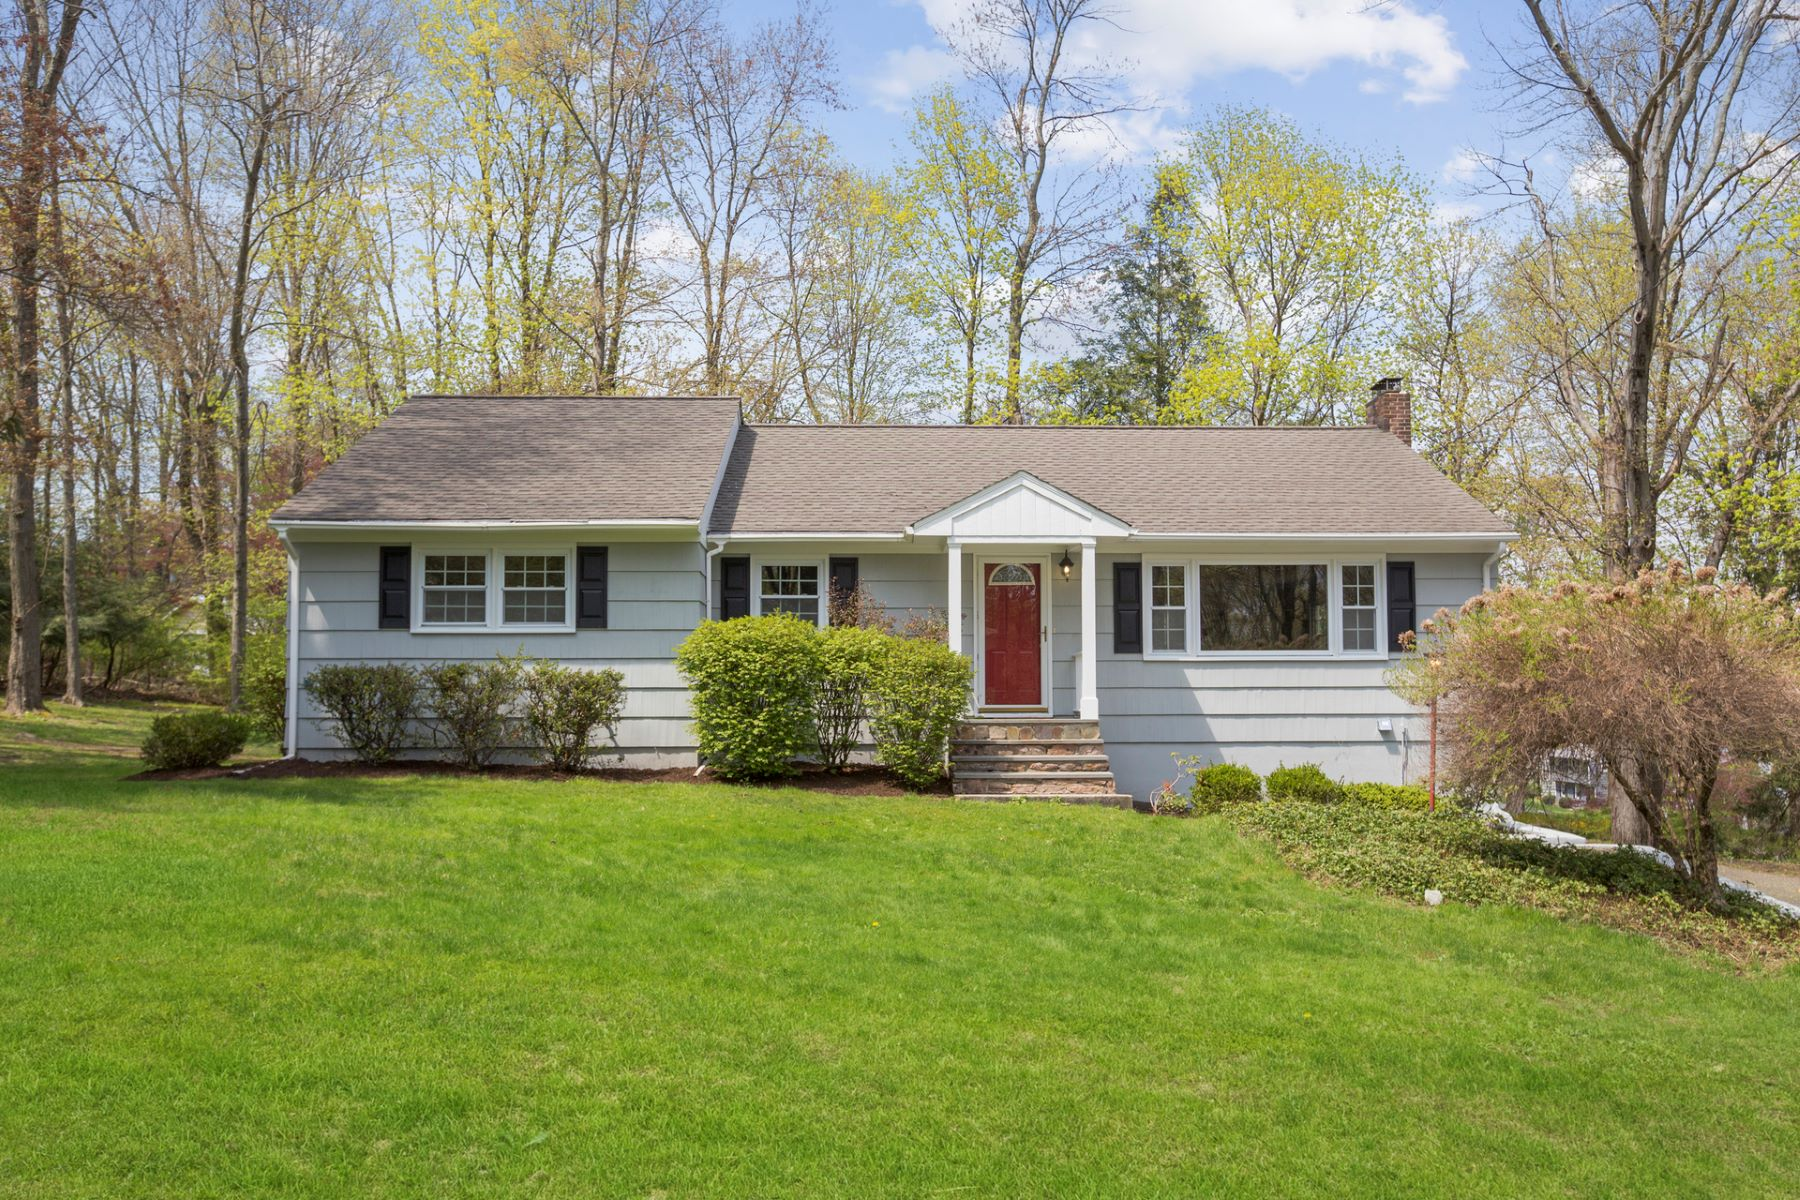 Single Family Home for Rent at Completely Updated Ranch 58 Split Level Road Ridgefield, Connecticut 06877 United States